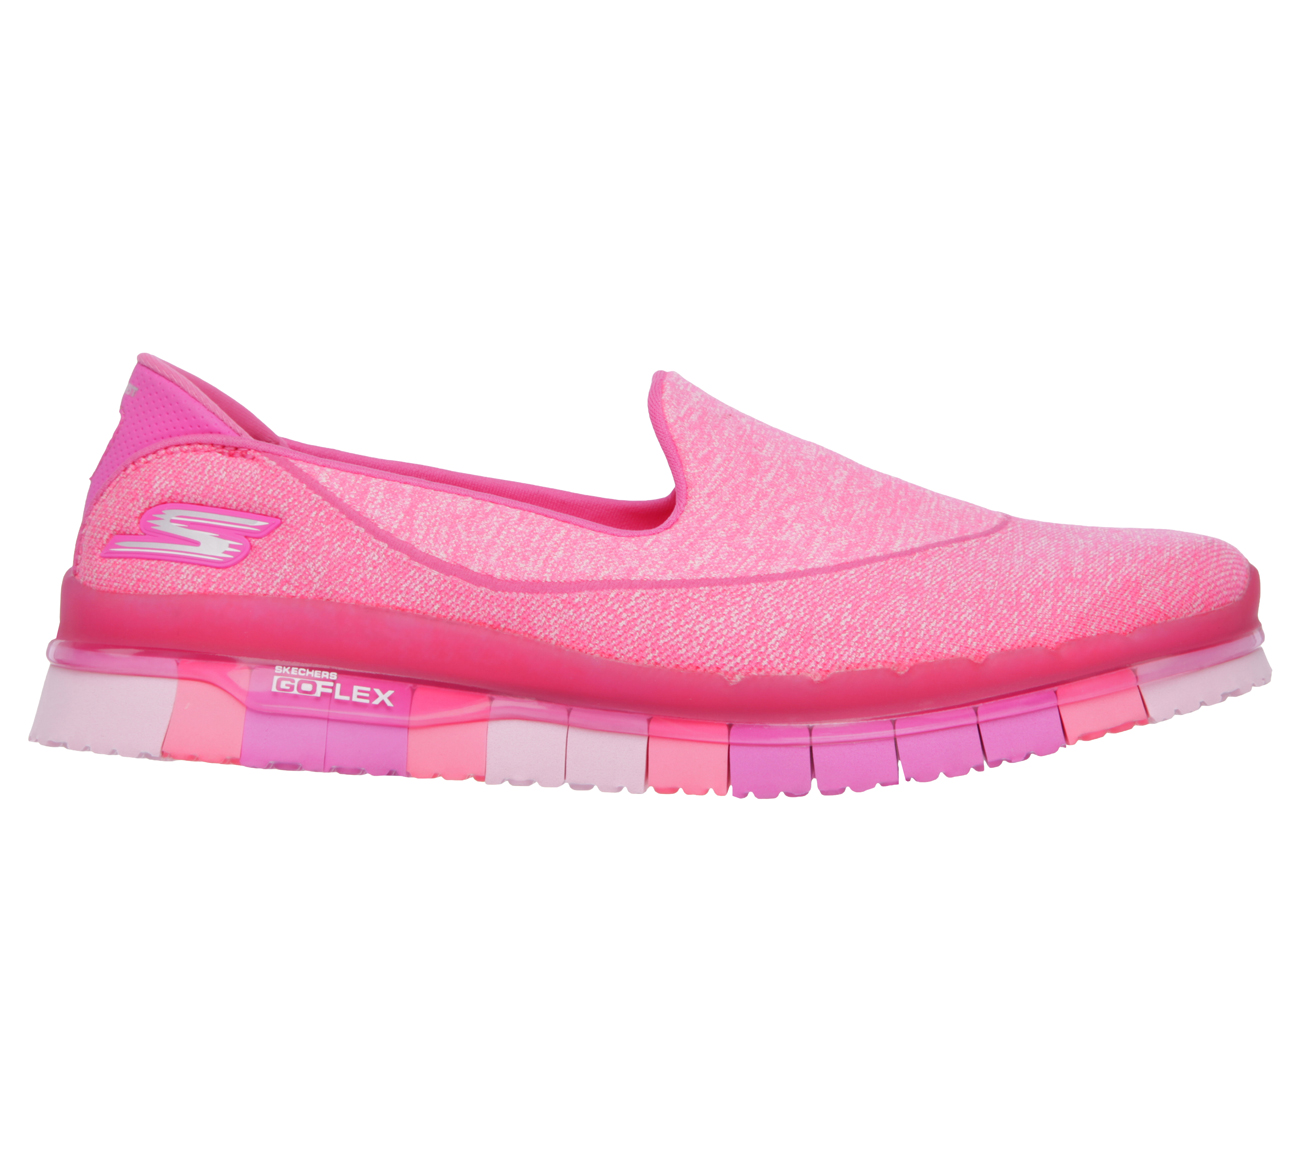 Skechers-Go Flex Slip On-HPK-$149.90